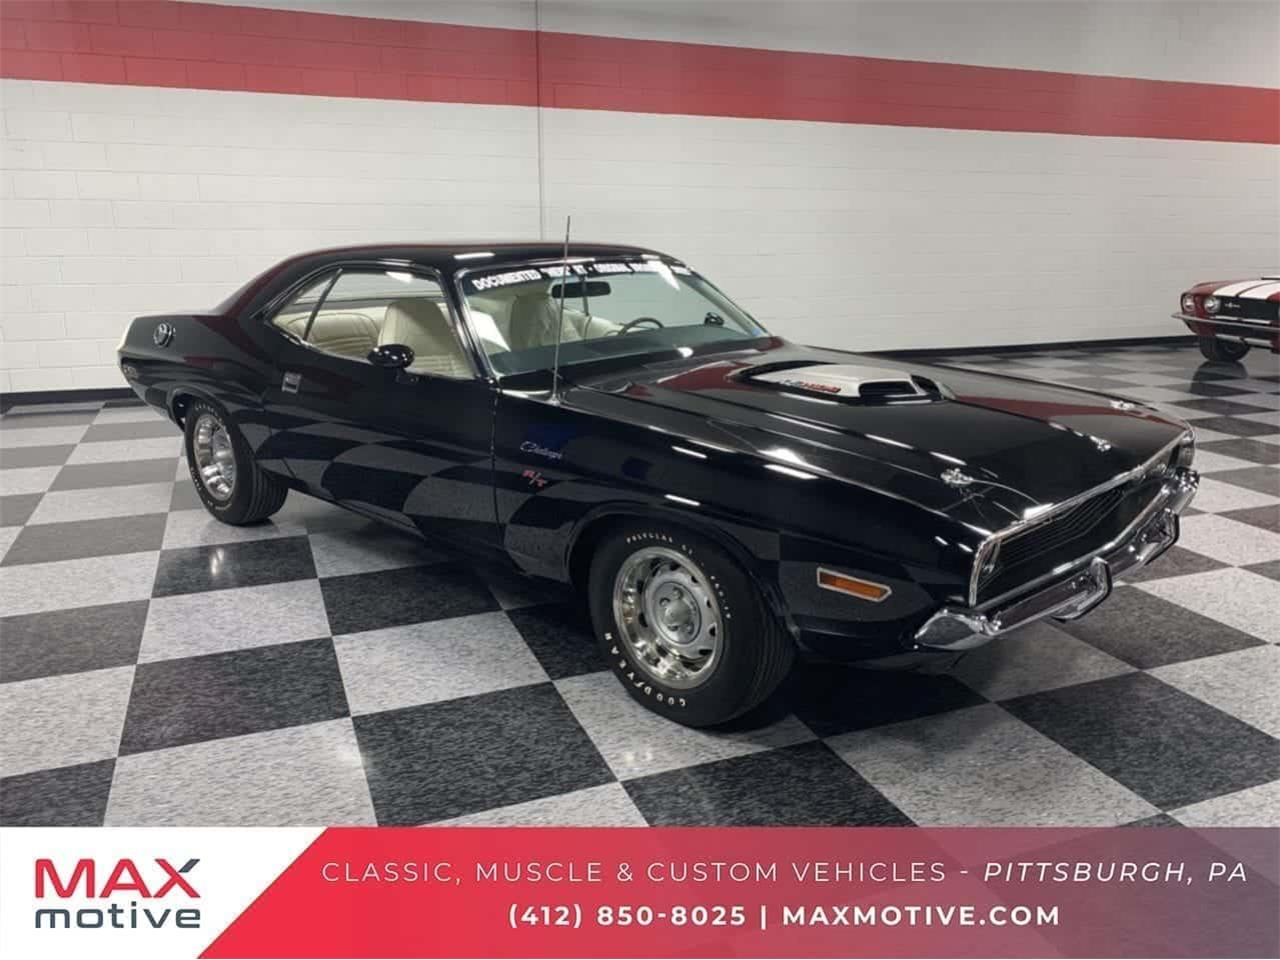 Large Picture of '70 Challenger located in Pittsburgh Pennsylvania Offered by MAXmotive - PCS1